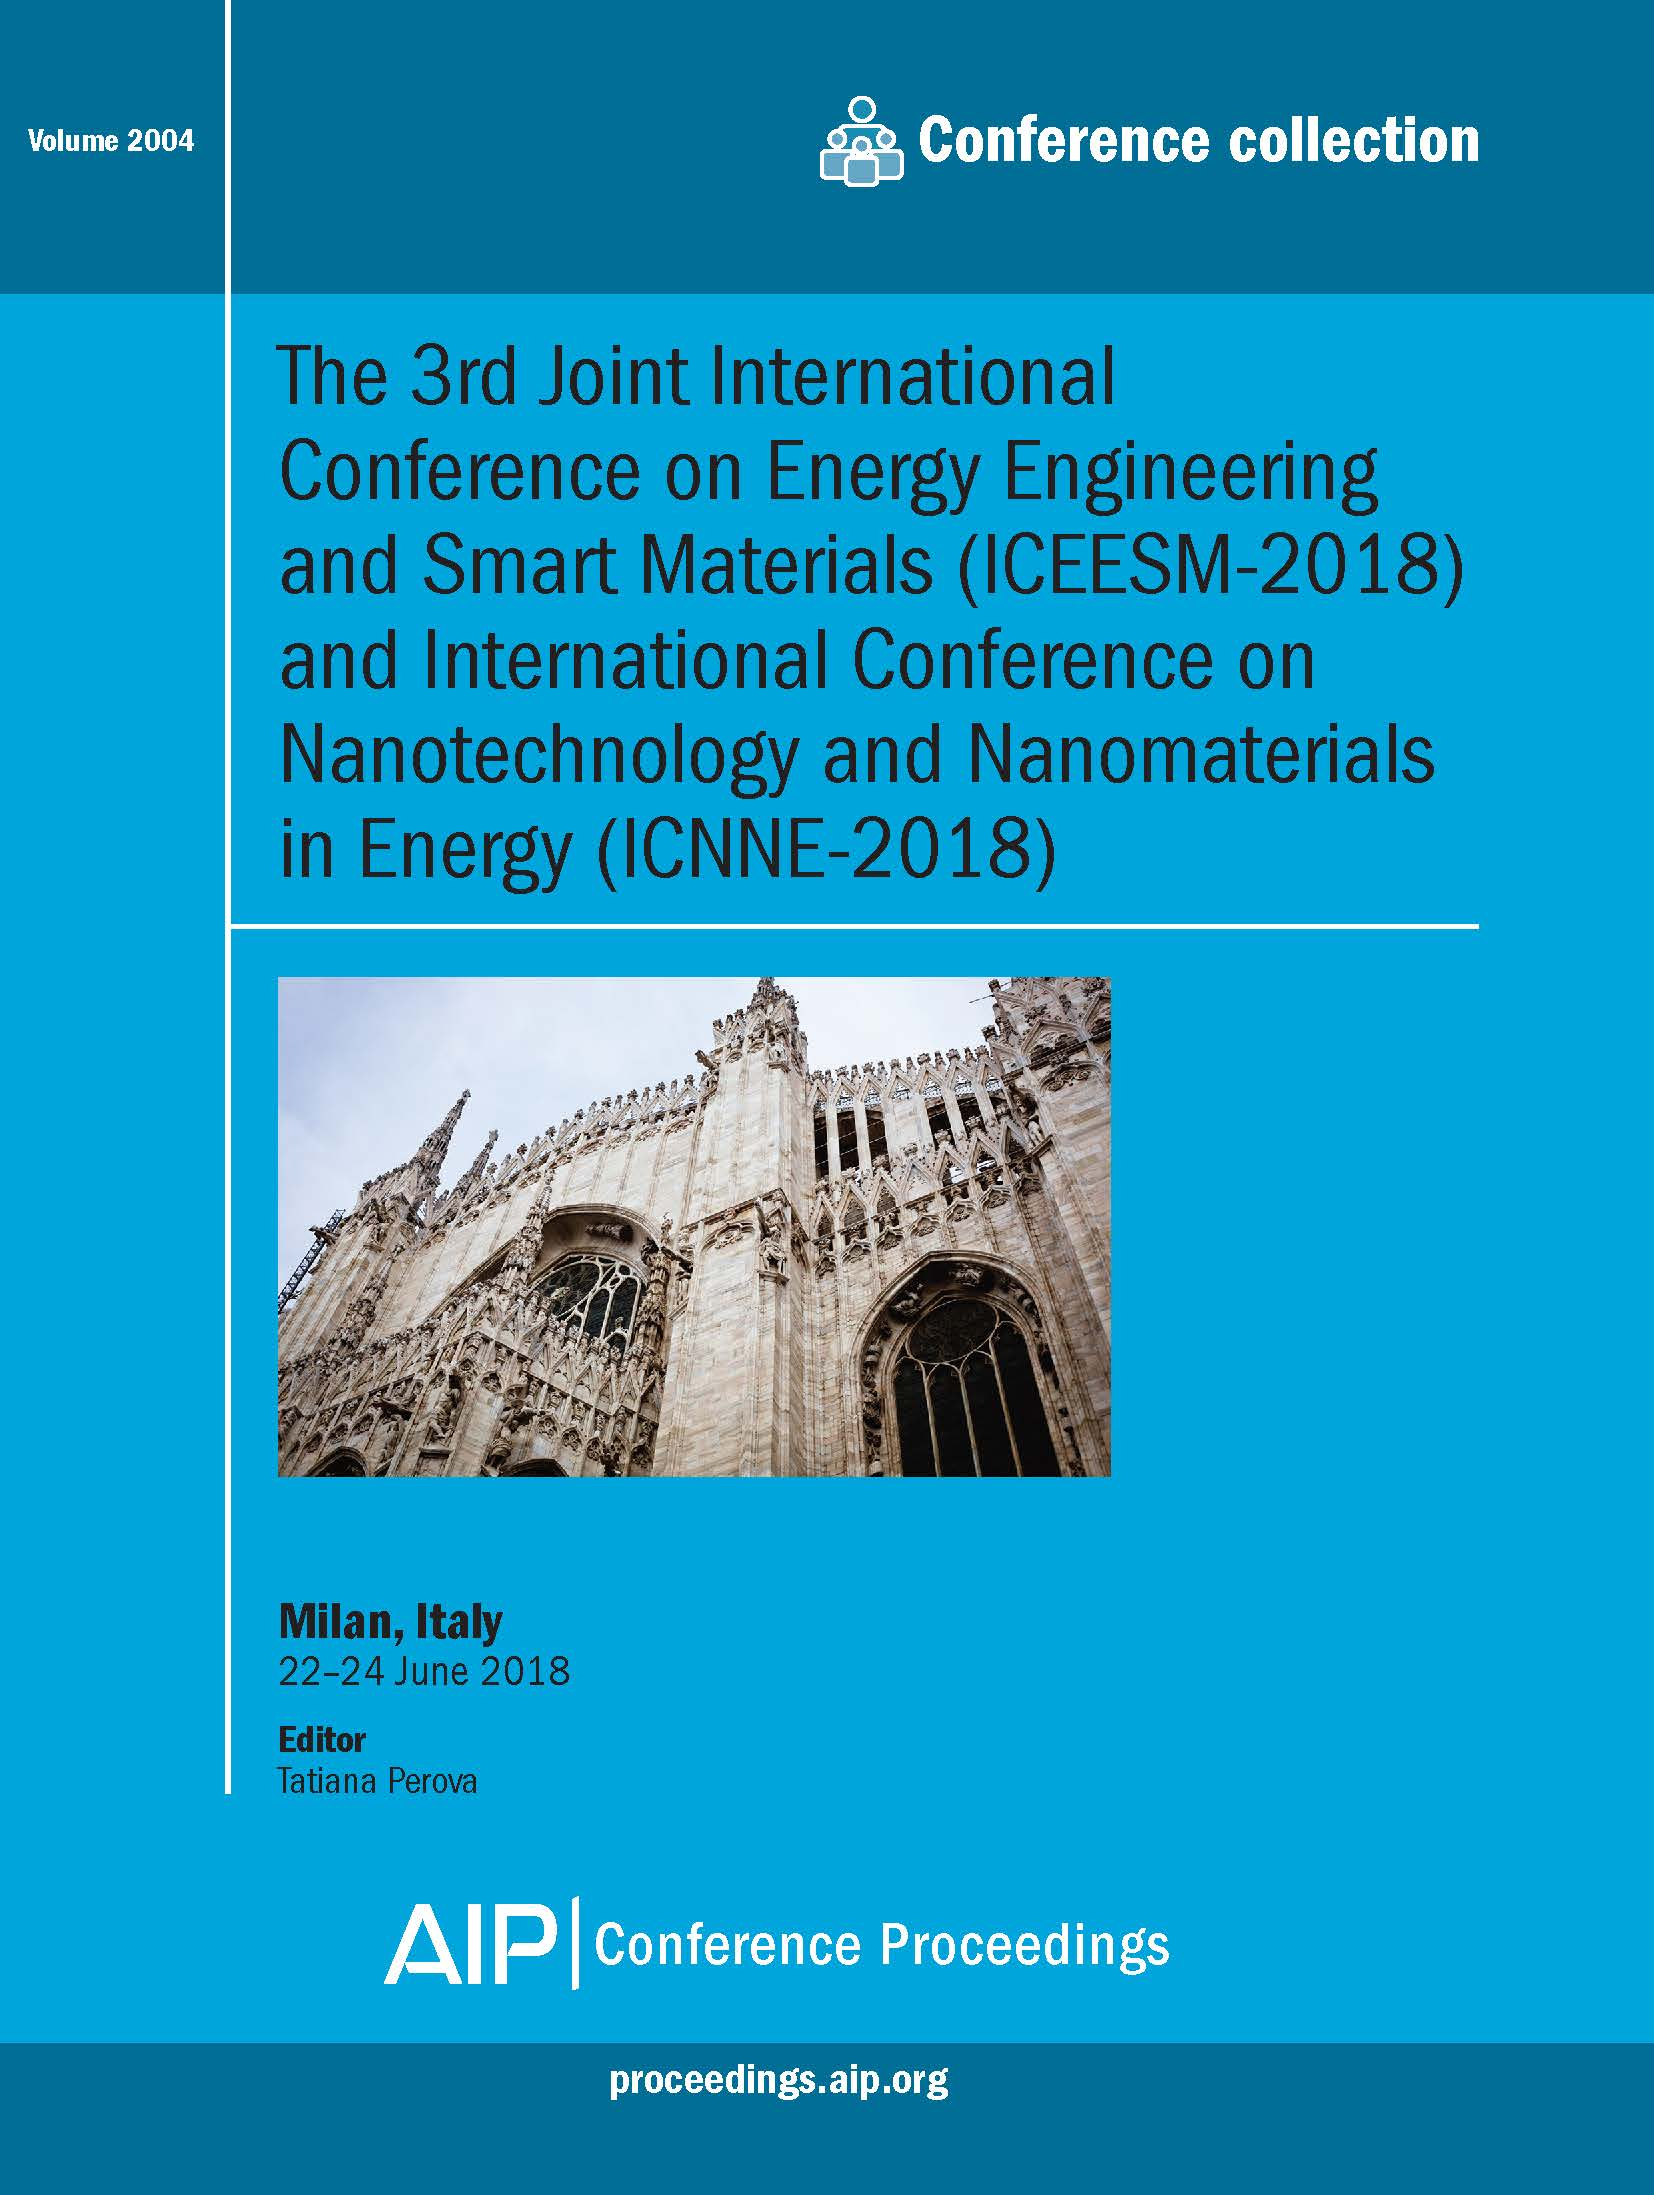 Volume 2004: The 3rd Joint International Conference on Energy